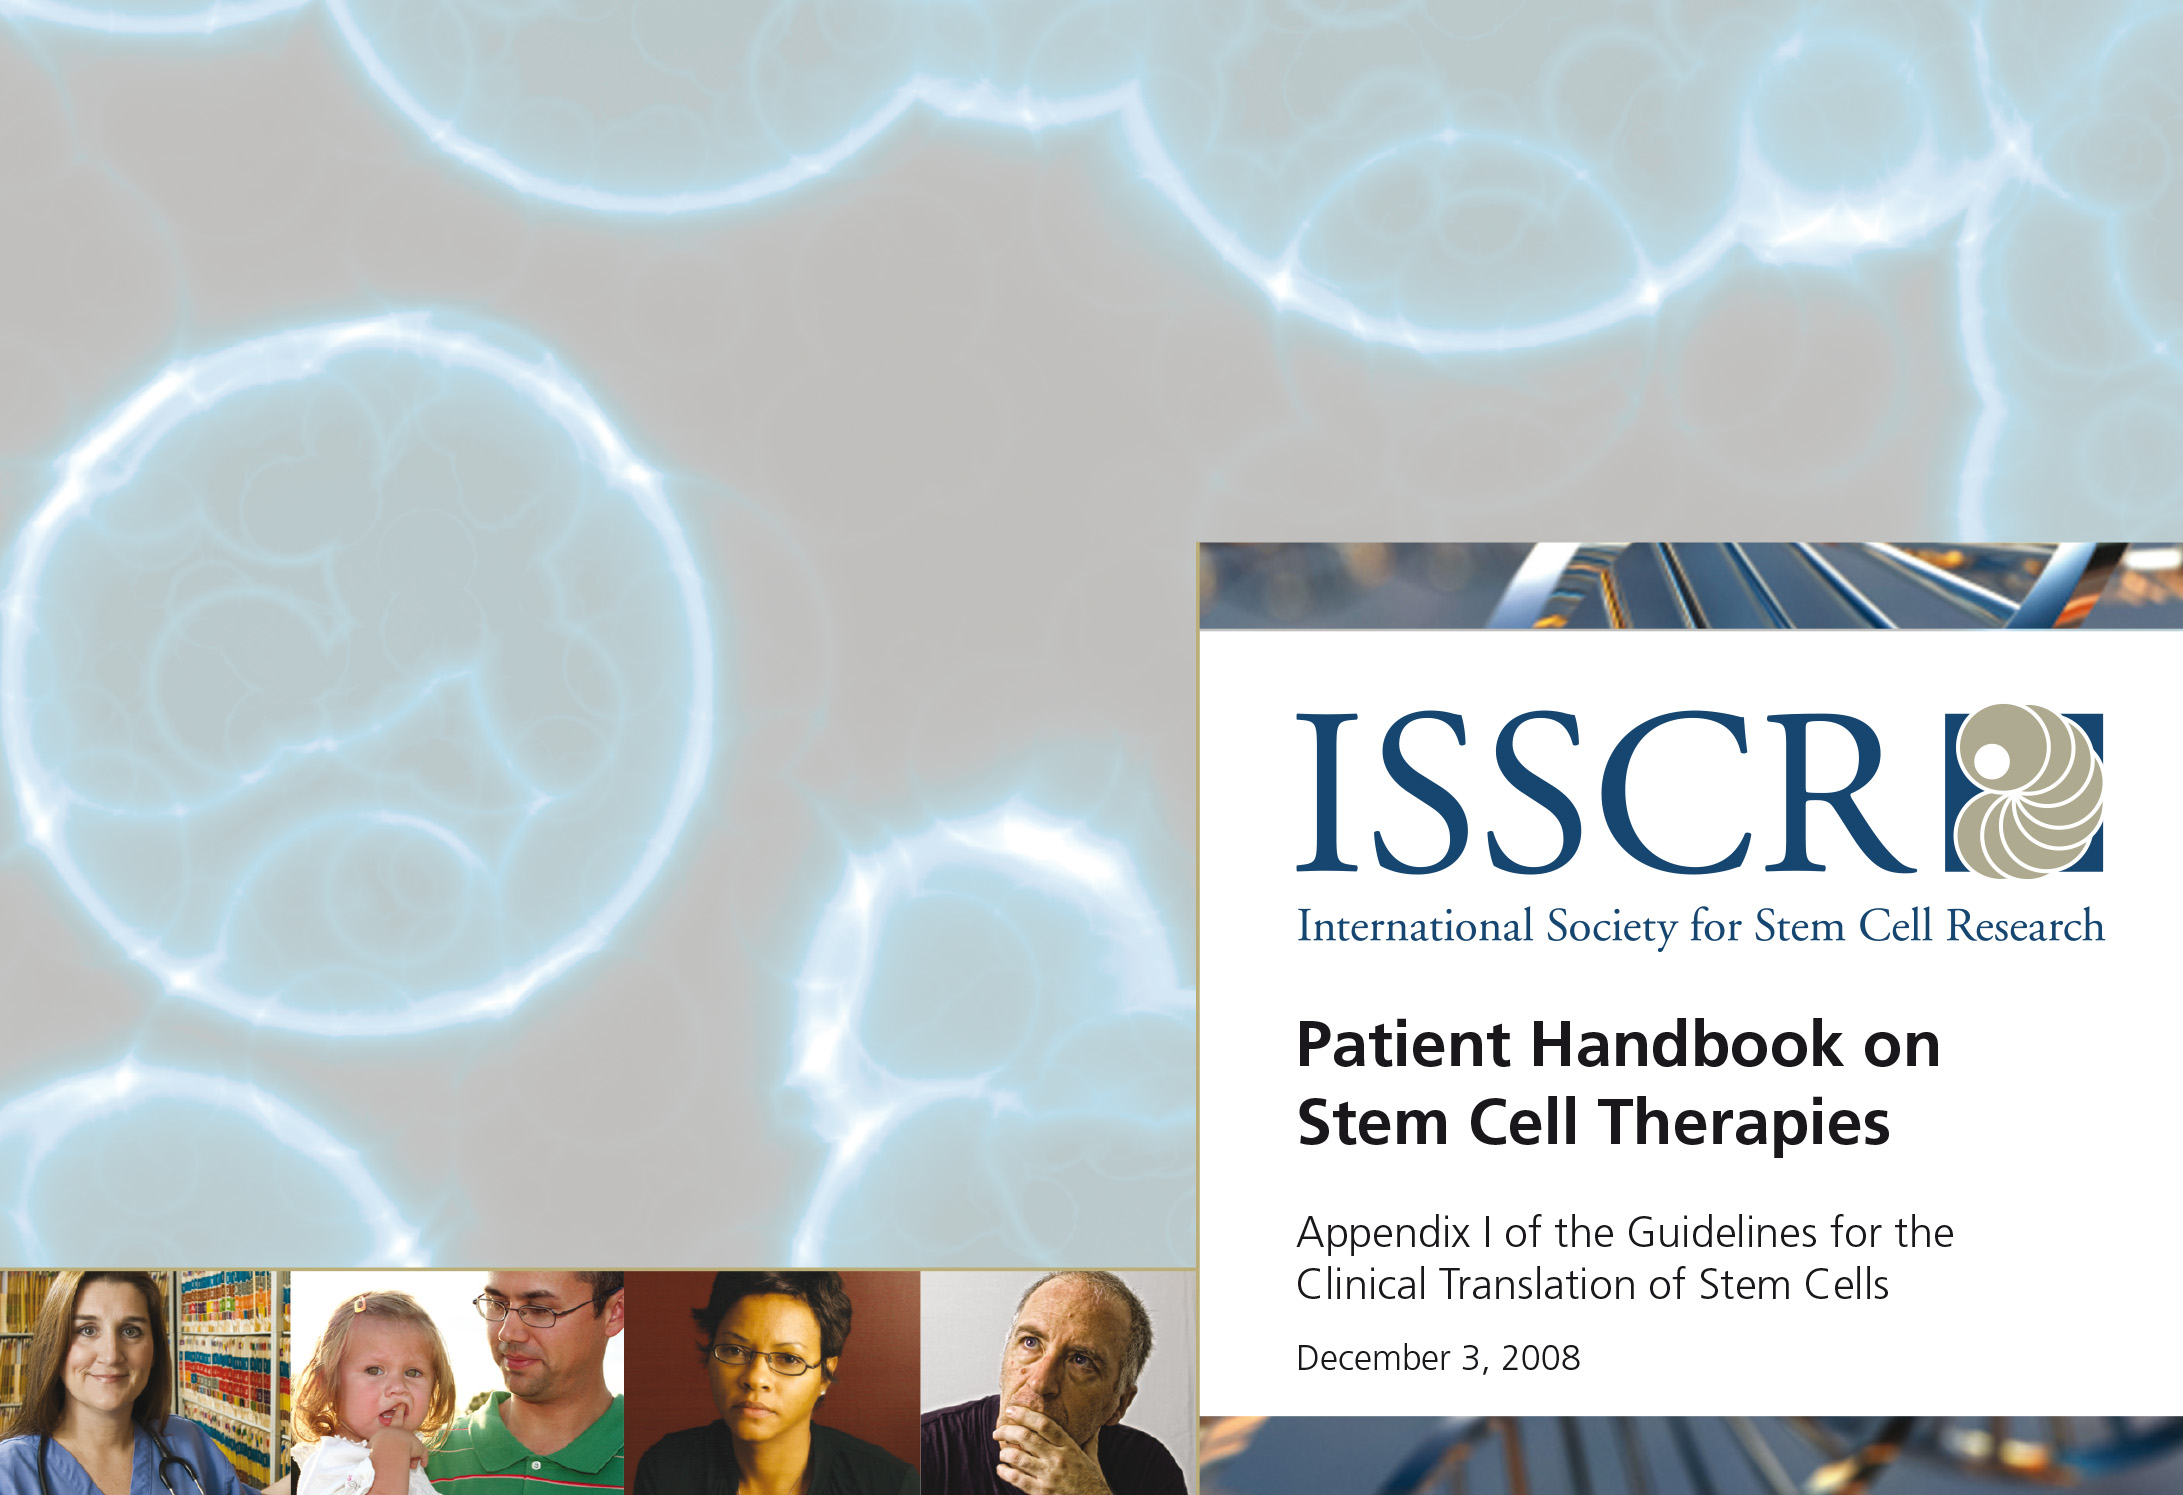 Patient handbook on stem cell therapies